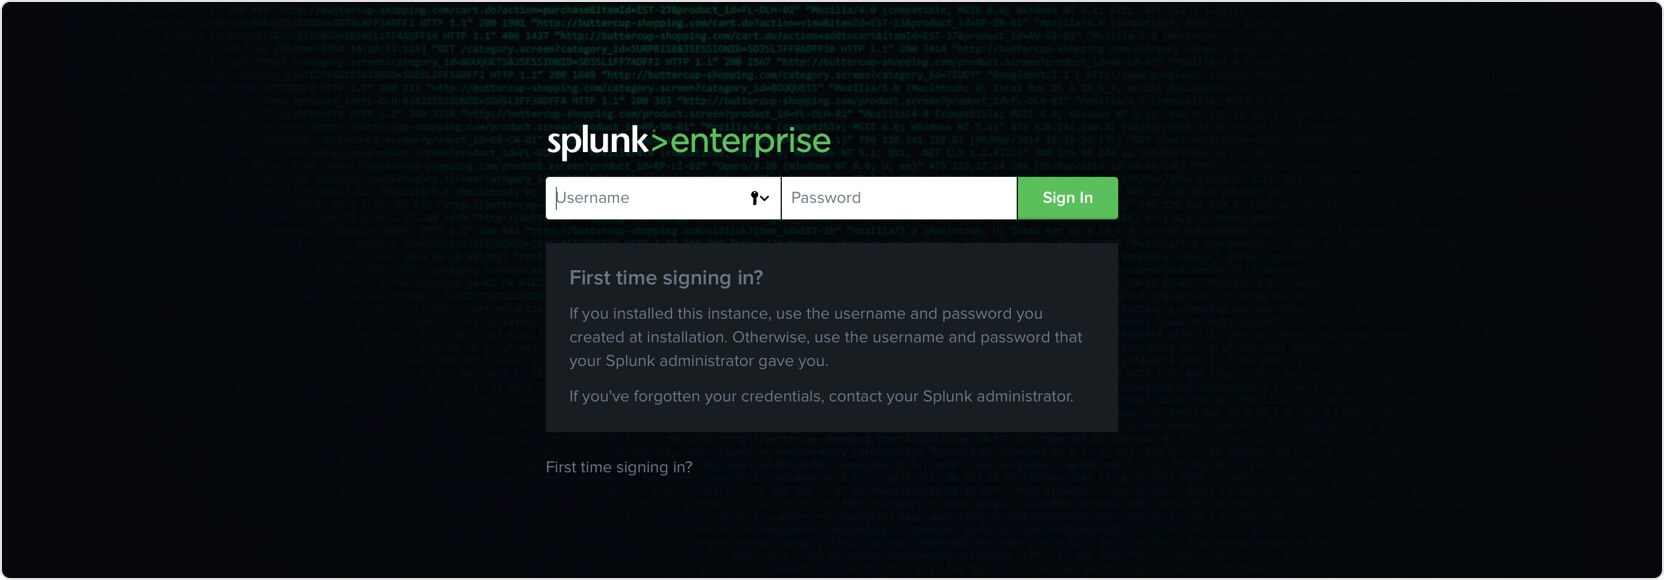 Log in to your Splunk instance